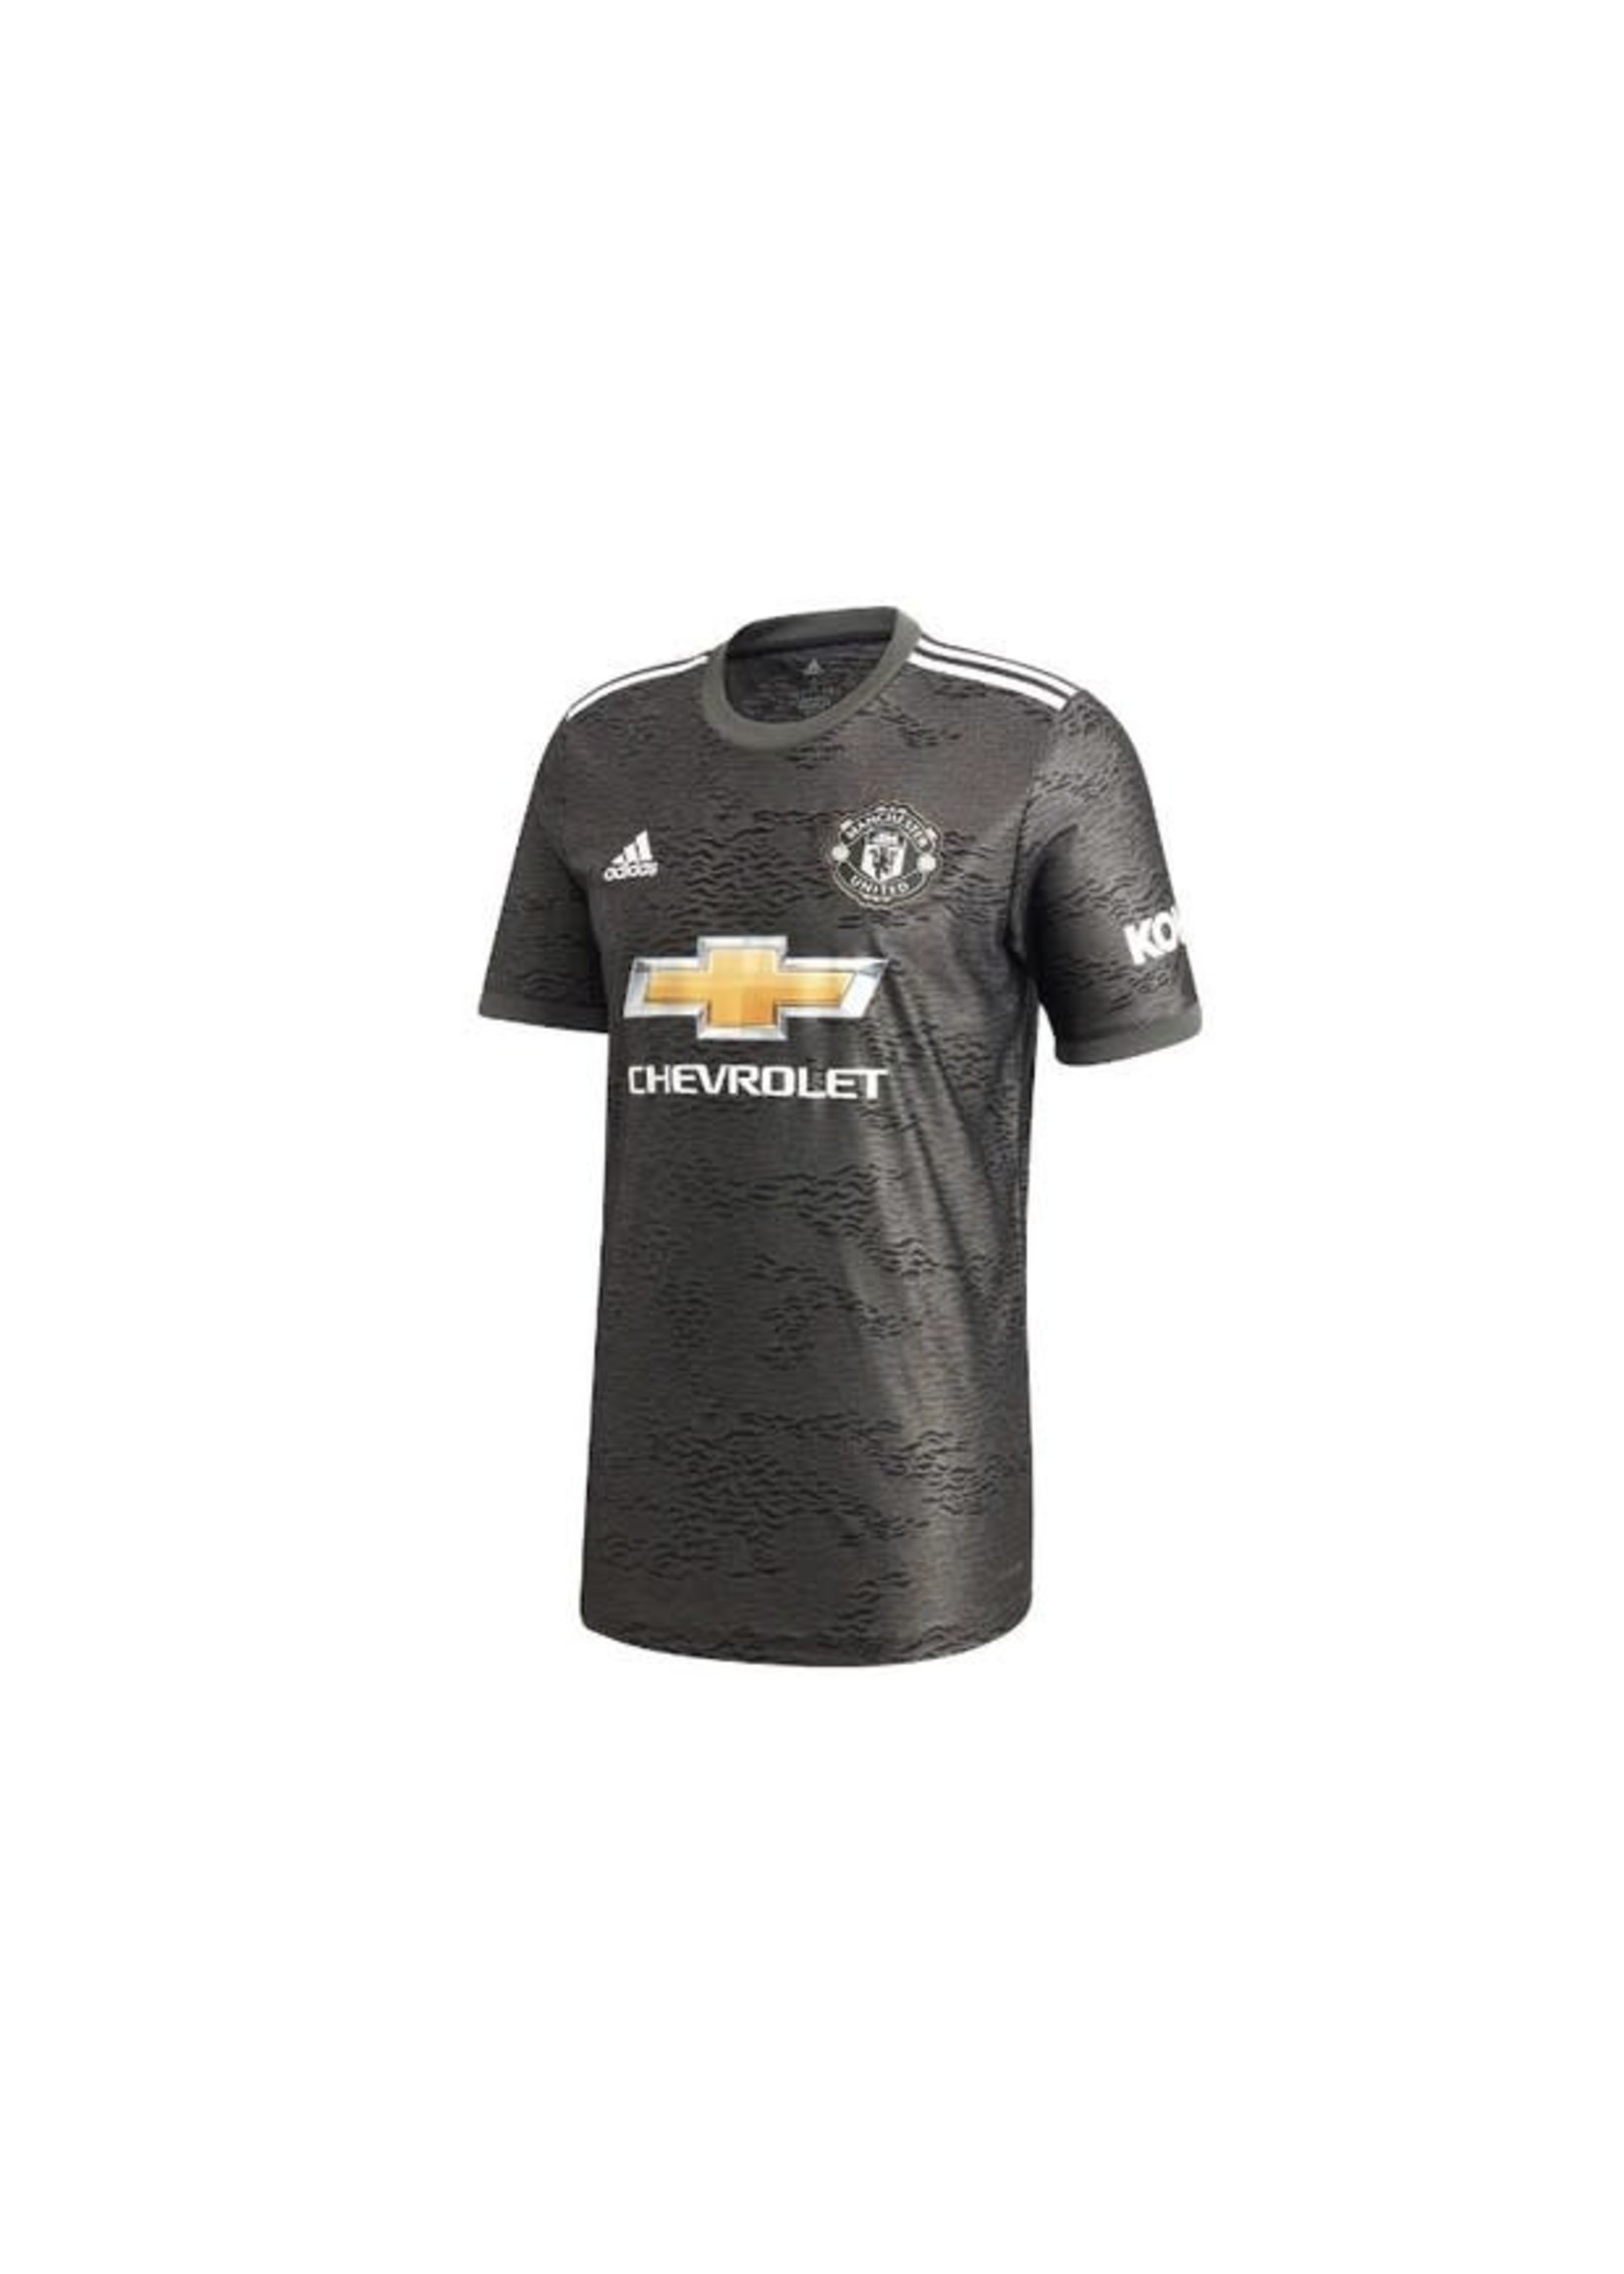 Adidas MANCHESTER UNITED 2020/21 AWAY JERSEY